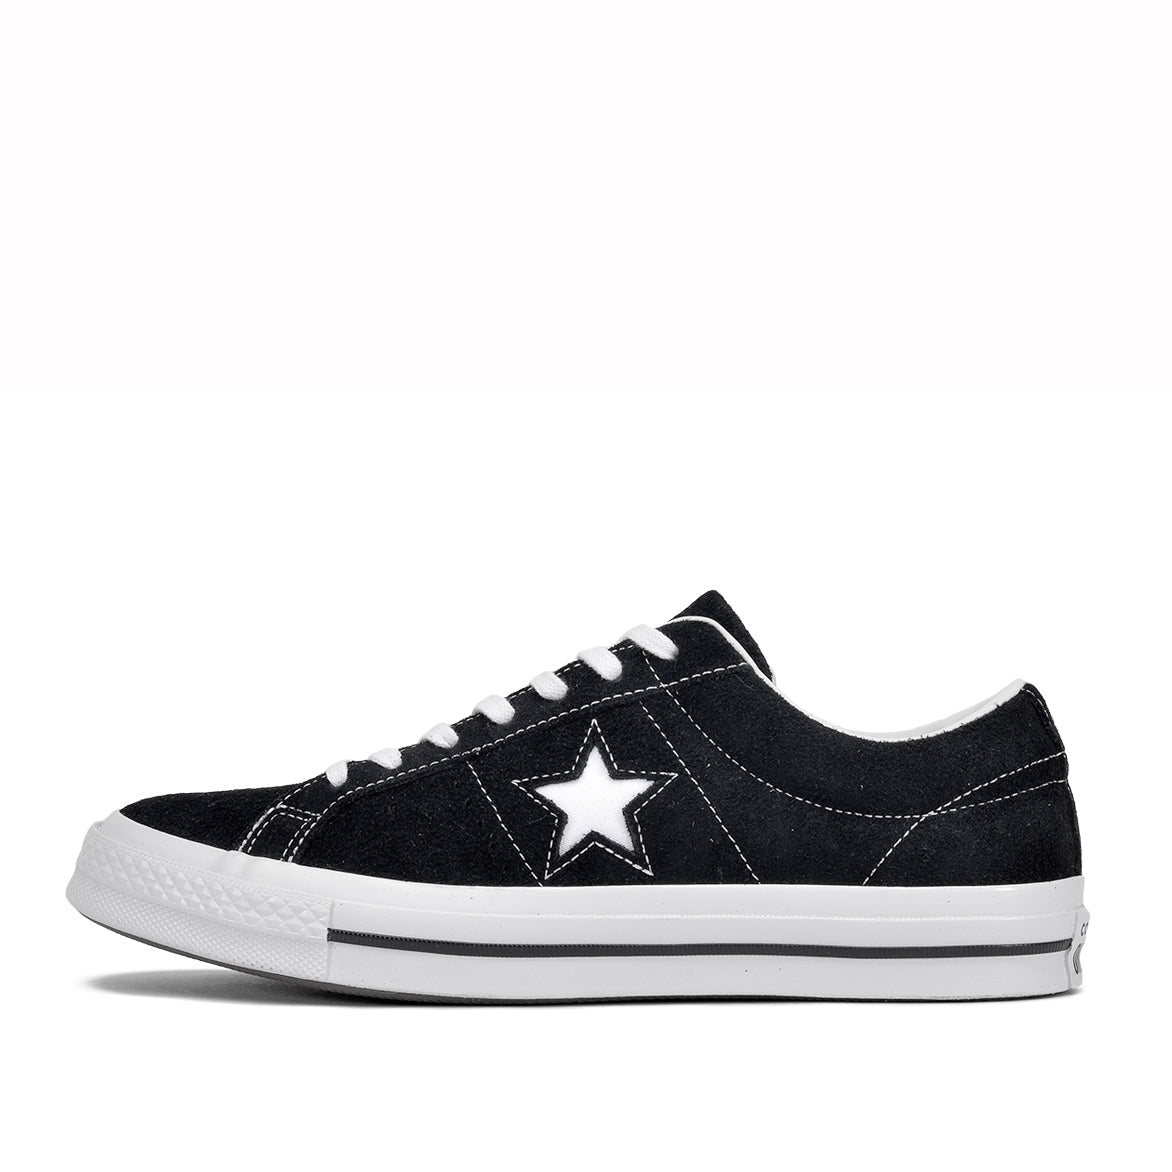 ONE STAR OX - BLACK / WHITE